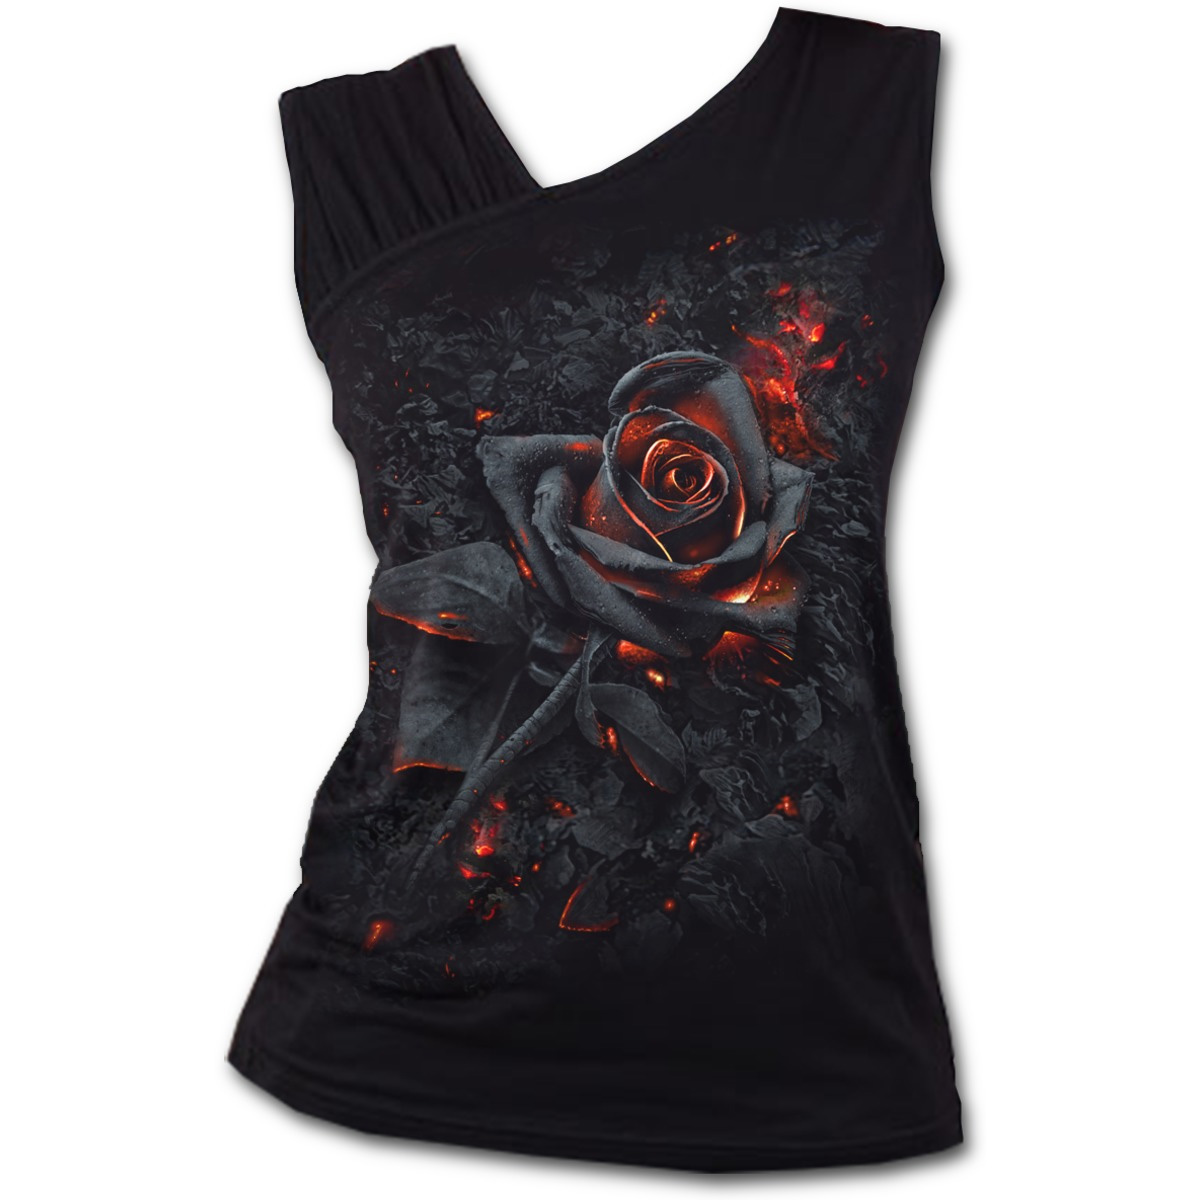 SPIRAL-DIRECT-Ladies-Black-Goth-BURNT-ROSE-Fire-Slant-Vest-Top-All-Sizes thumbnail 3